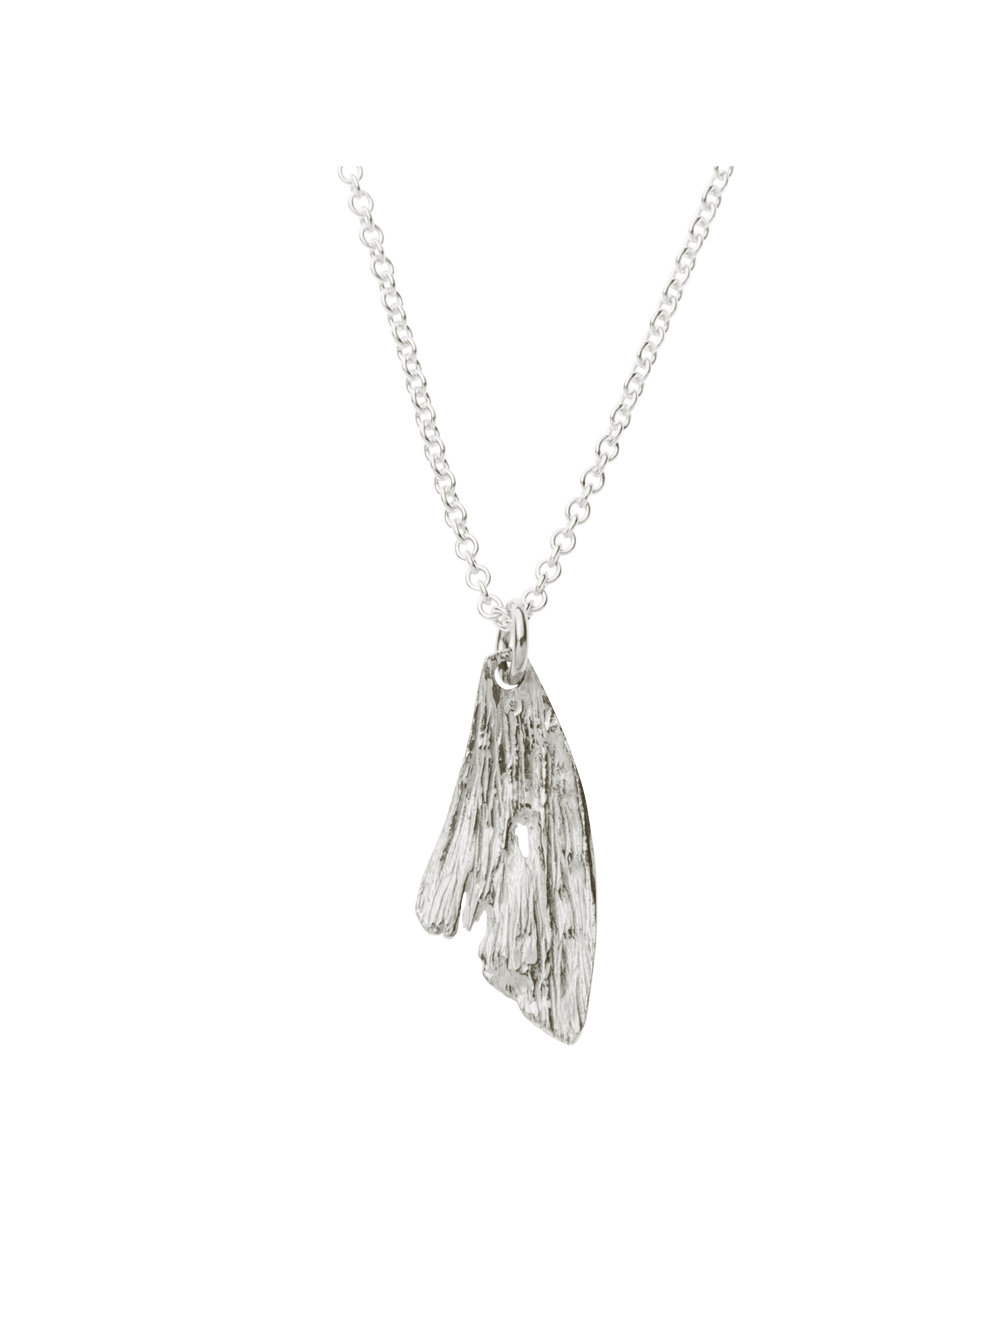 Boho Fish Tail Pendant Necklace - Silver Jewellery